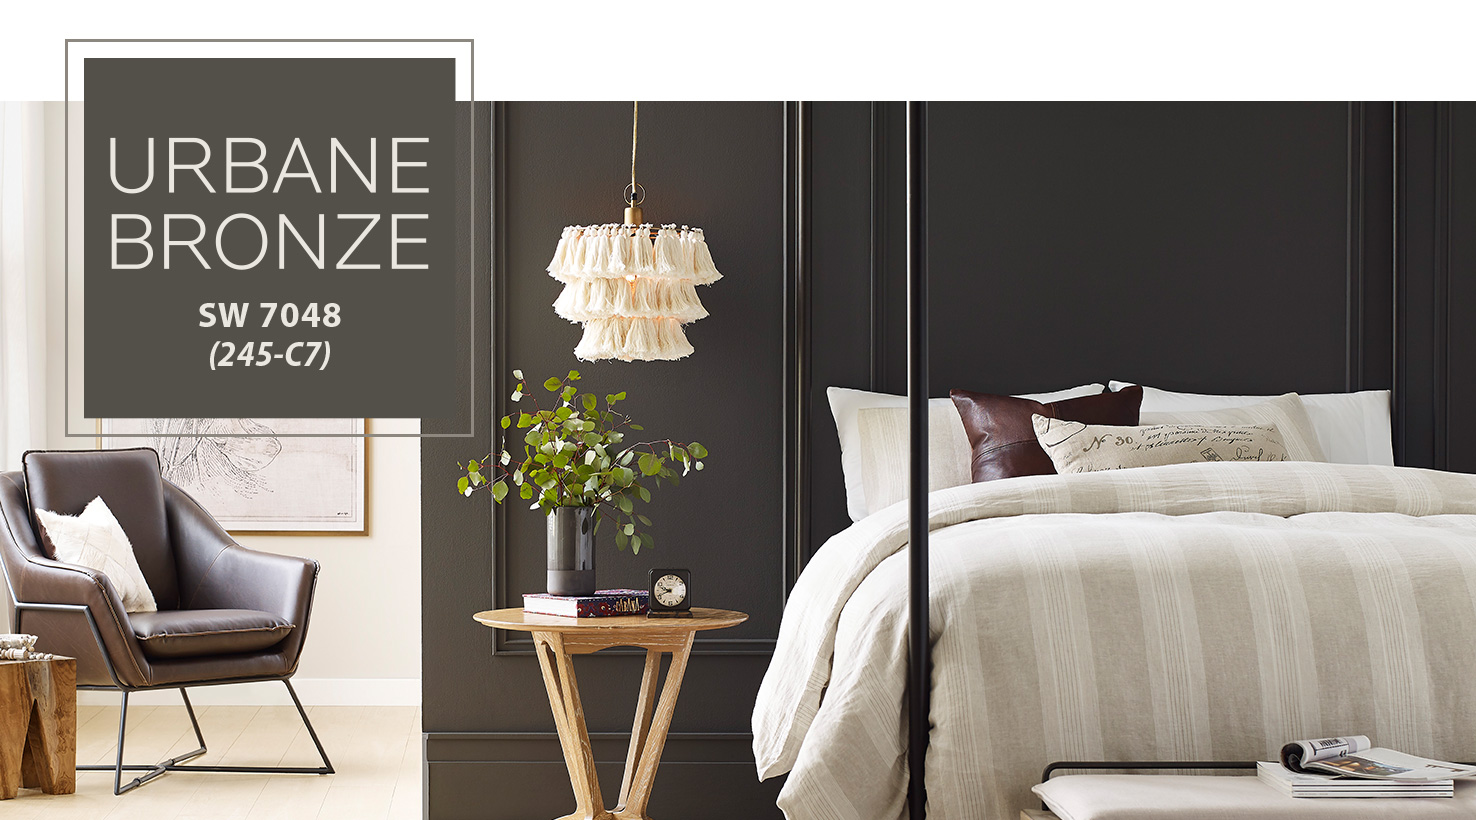 2021 Sherwin Williams Paint Color of the year